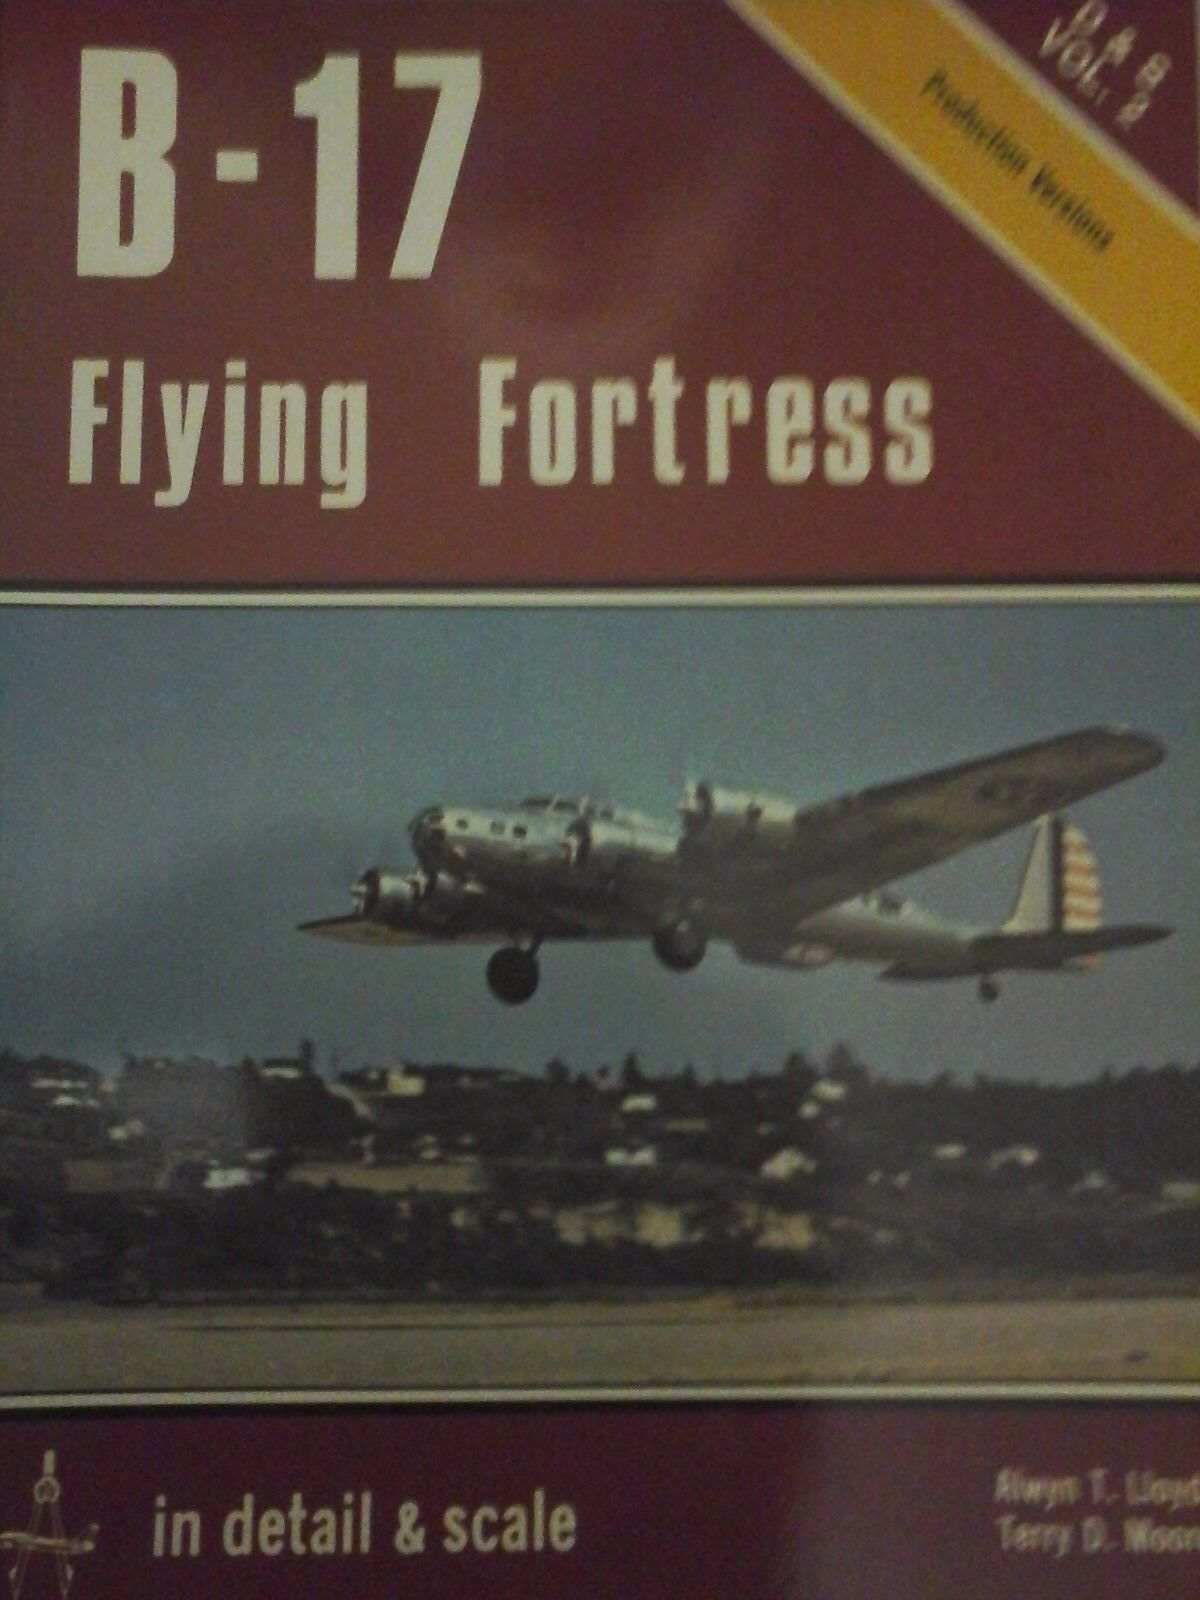 B-17 FLYING FORTRESS P1-SQUADRON SIGNAL IN DETAIL & SCALE VOL.2 -BY BERT KINZEY